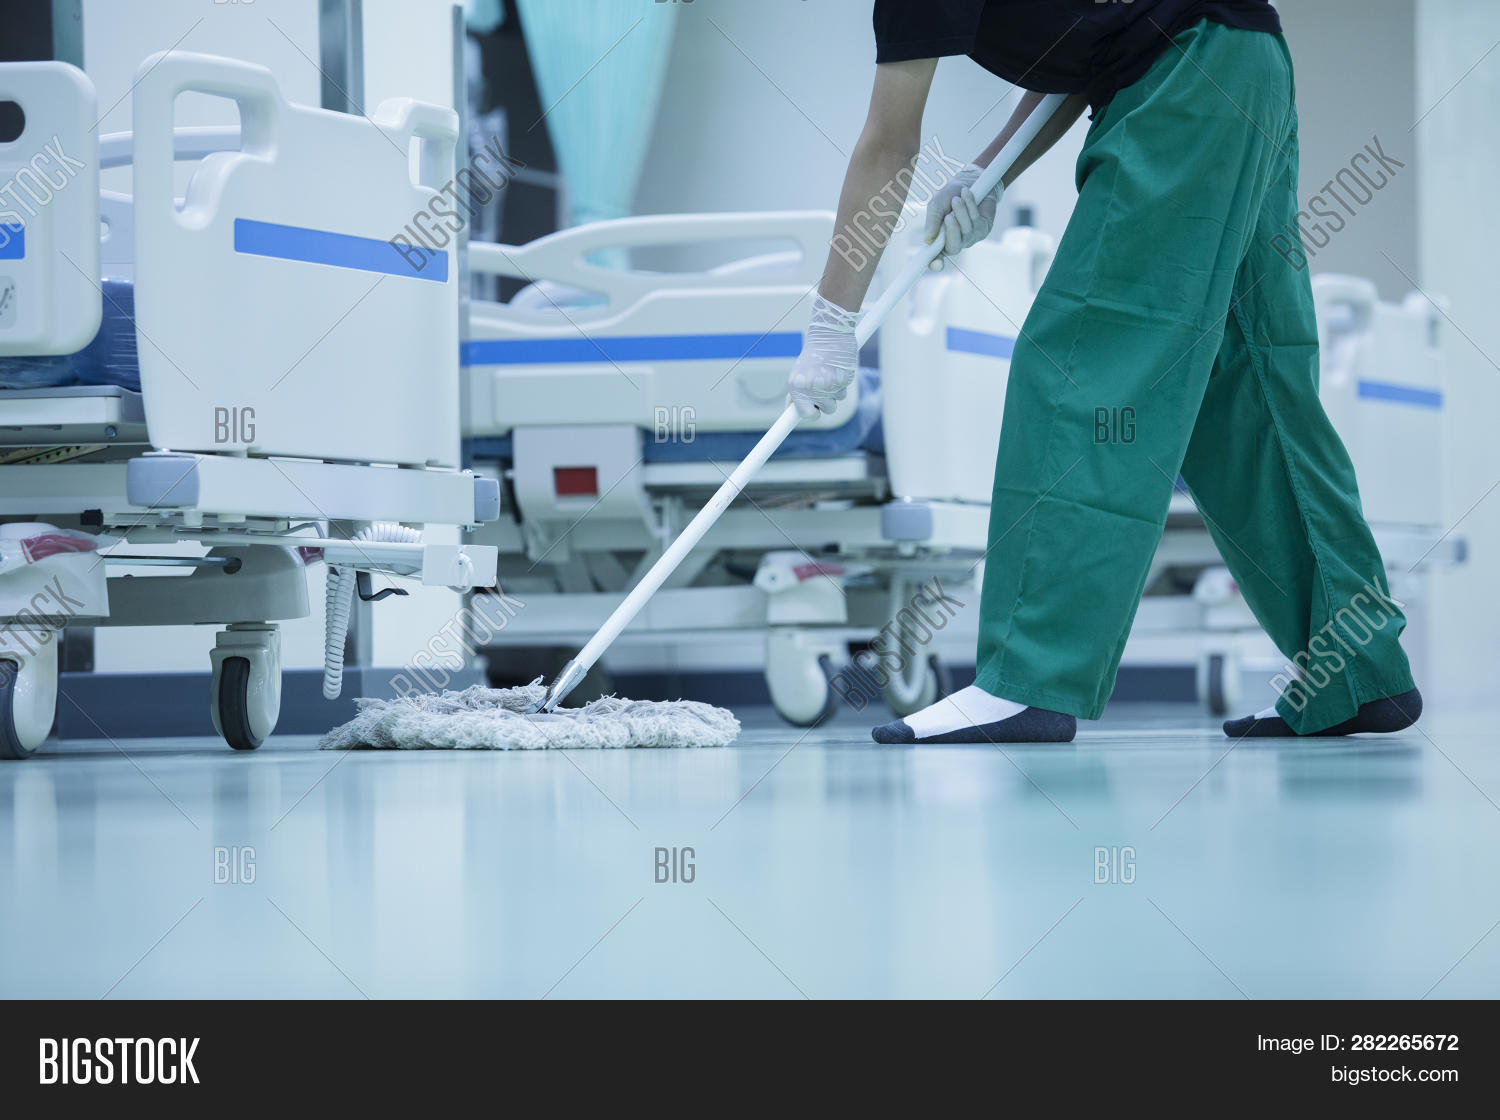 adult,bucket,building,business,care,caucasian,charlady,charwoman,clean,cleaner,cleaning,cleanness,clinic,corridor,dust,equipment,factory,female,floor,girl,hall,hospital,industrial,instruments,job,lady,lifestyle,maid,medical,mop,occupation,pass,passage,people,person,purity,rag,routine,service,standing,sterile,technology,uniform,washer,washing,white,woman,work,worker